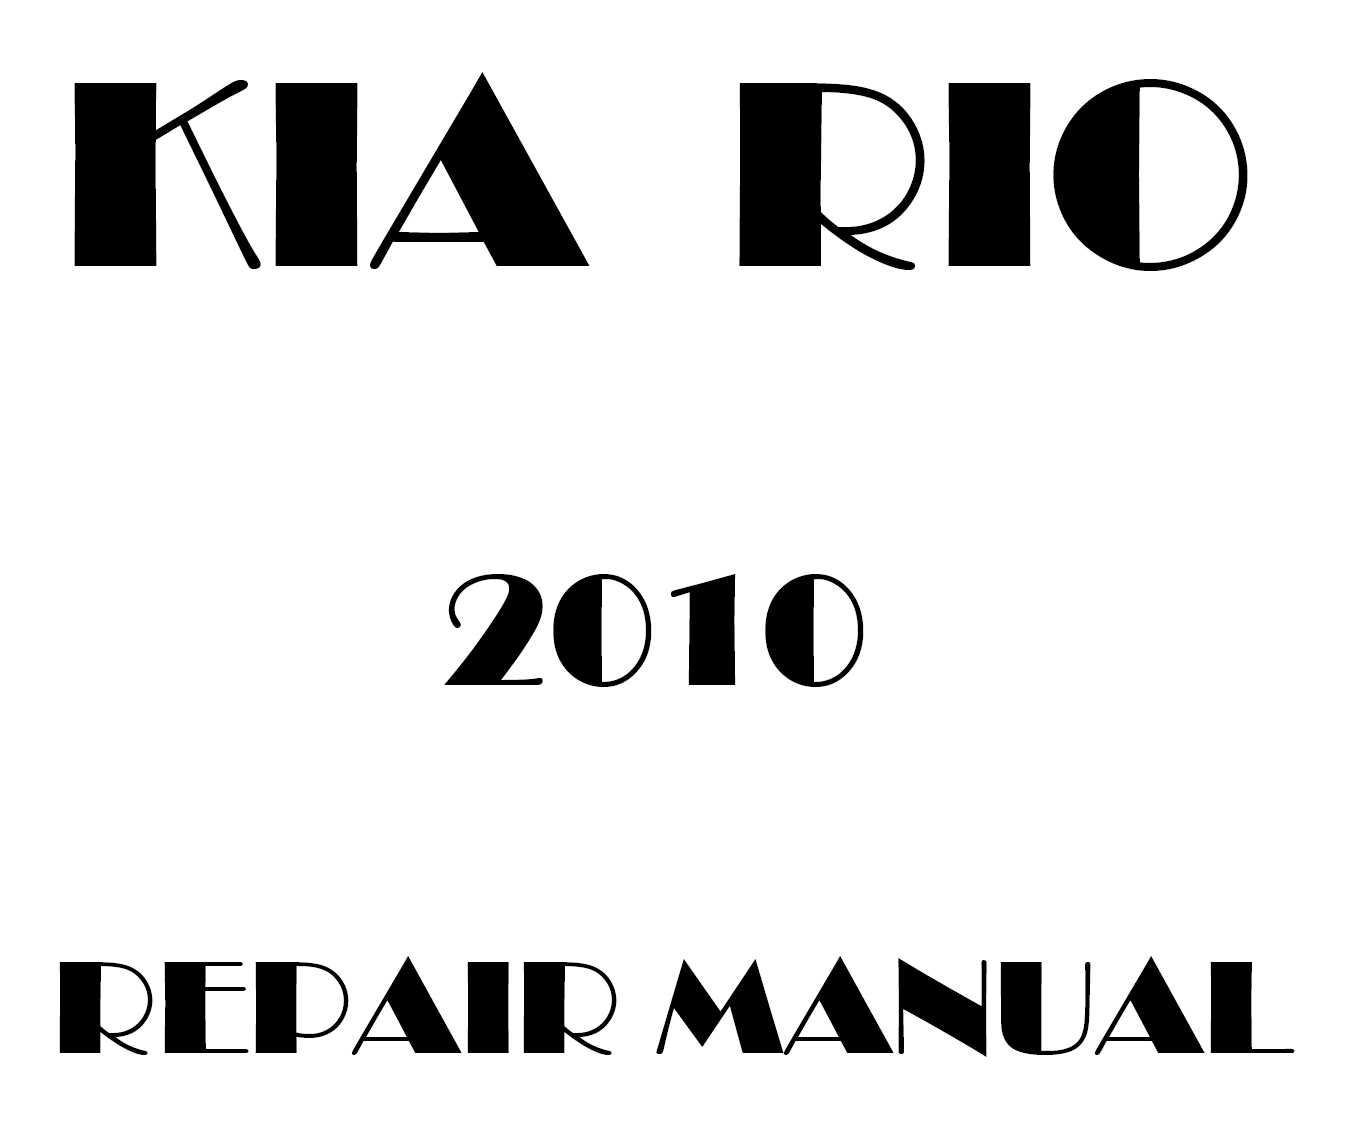 2010 Kia Rio repair manual